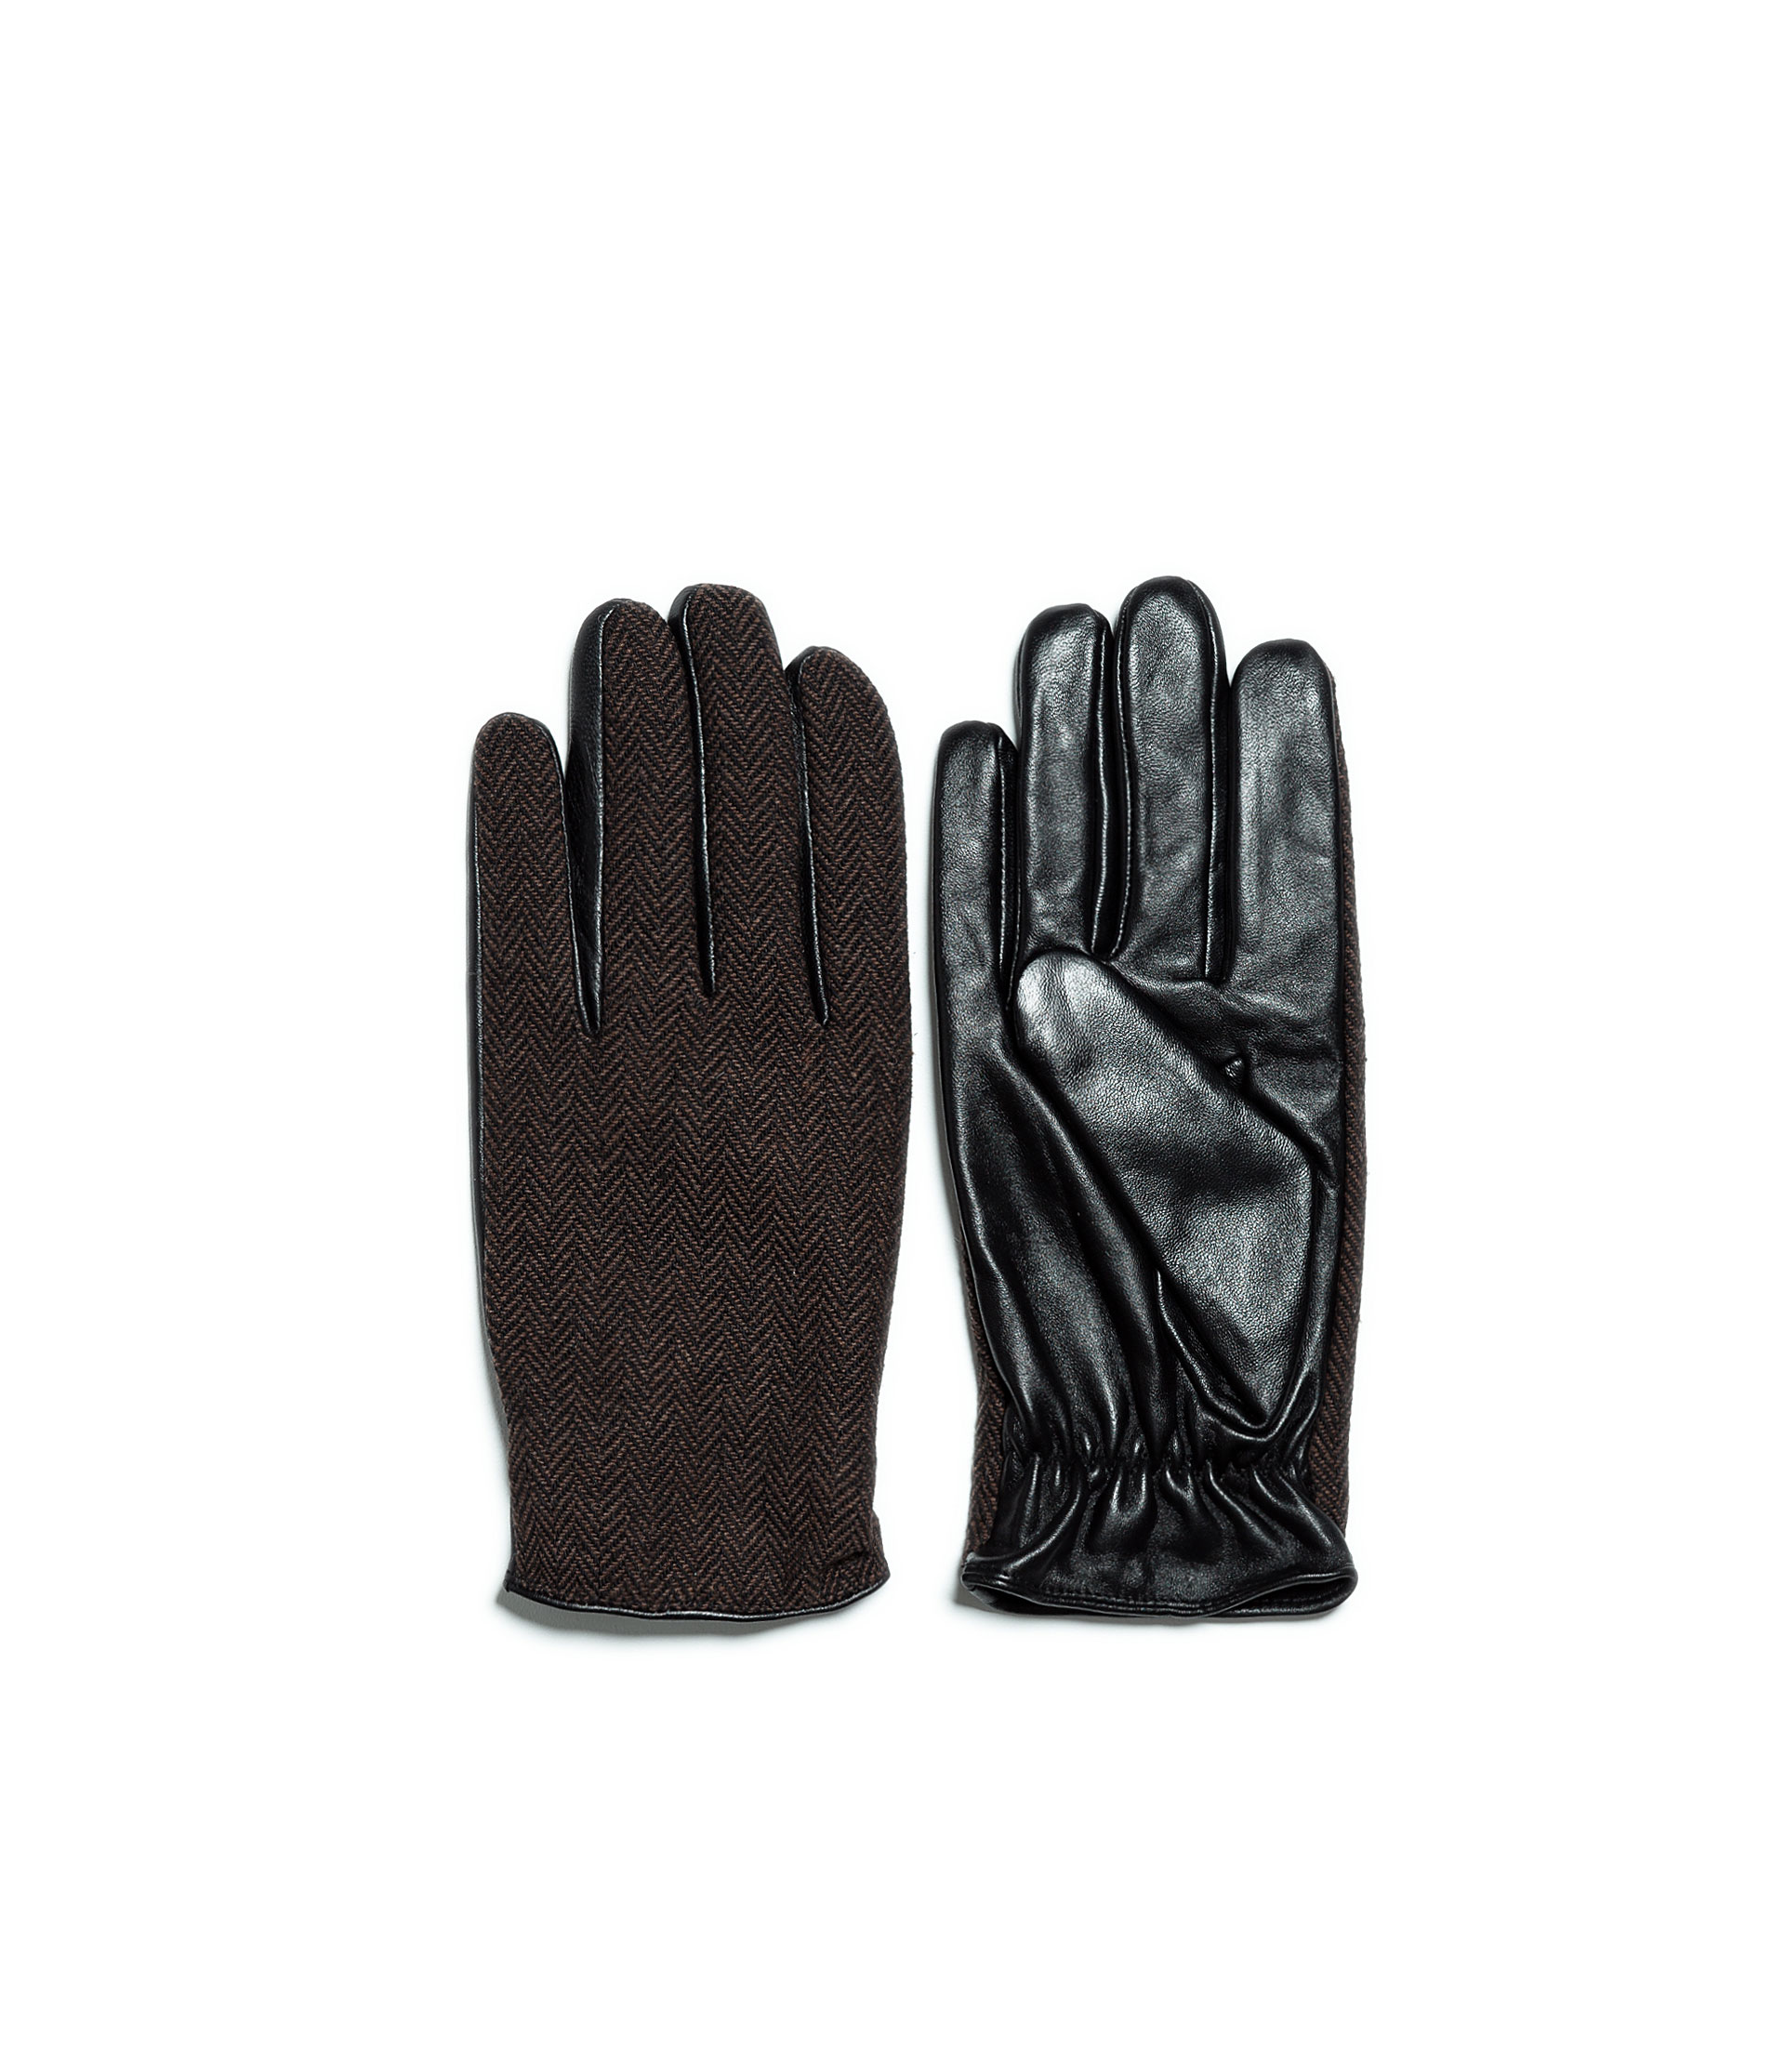 We offer a wide range of men's hats, gloves and leather gloves that will help you fight the freeze. Shop online or in store.